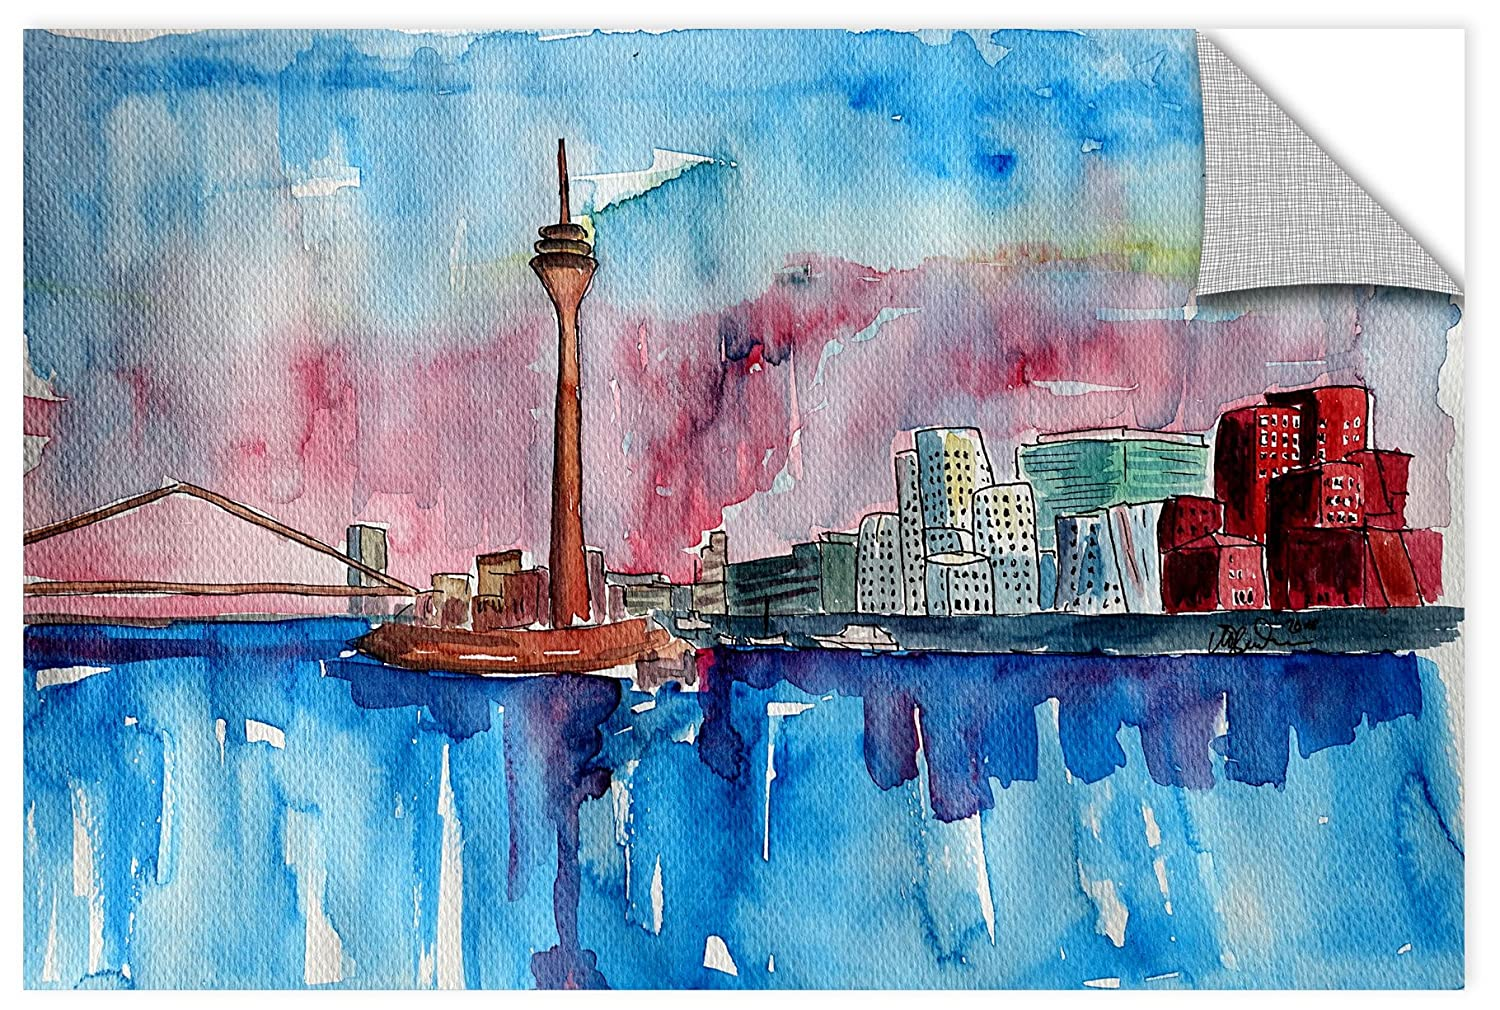 32X48 Marcus//Martina Bleichner Dusseldorf Germany Media Harbour Sunset Removable Wall Art Mural